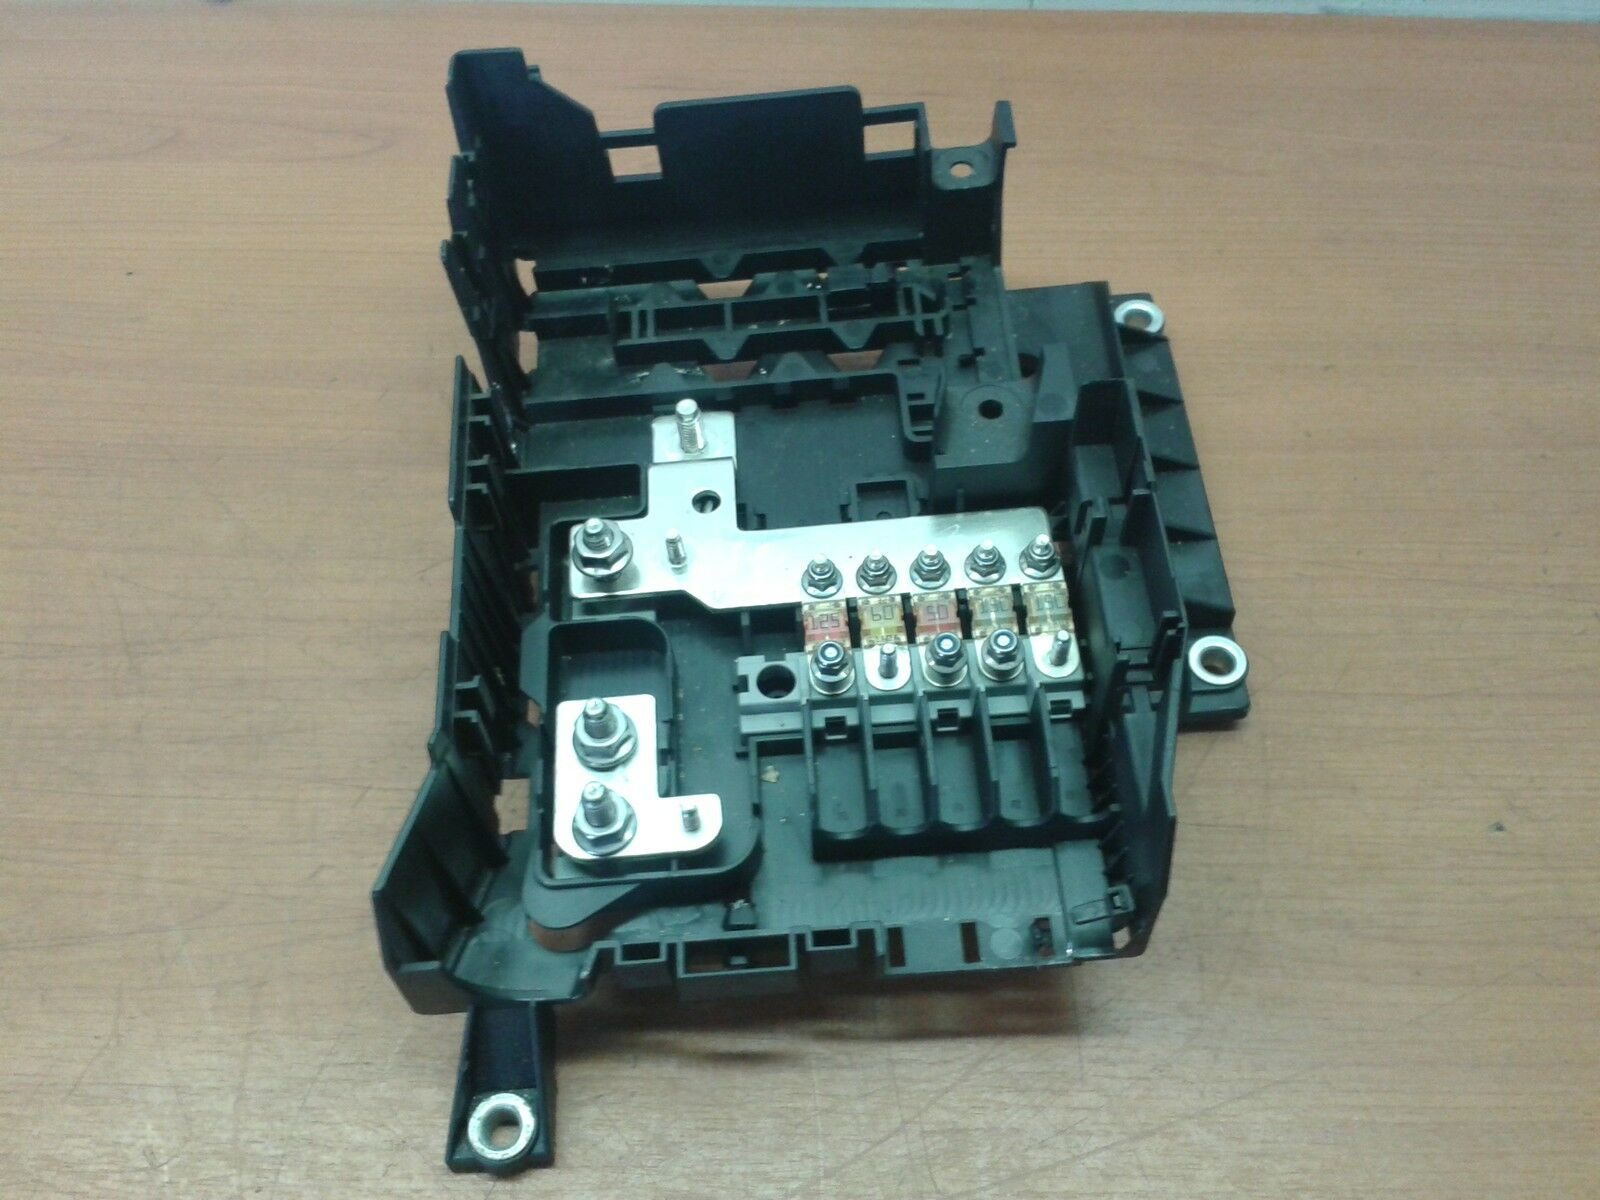 Genuine Audi Q7 4l Fuse Box Engine Compartment 7l0937548c Vw Touareg 1 Of 1only Available See More